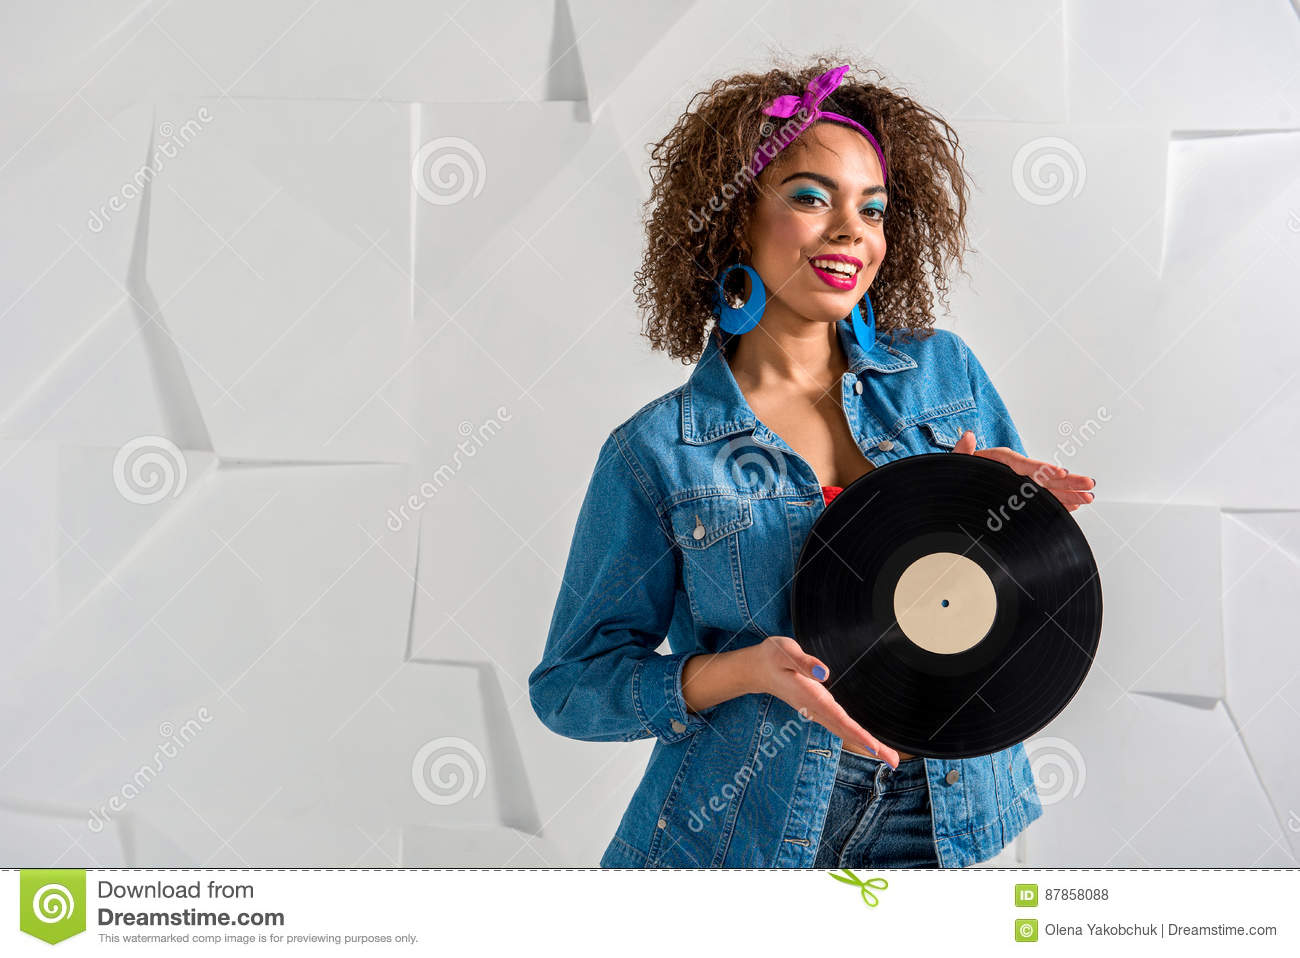 Outgoing African Female Holding Music Platter Stock Photo - Image of